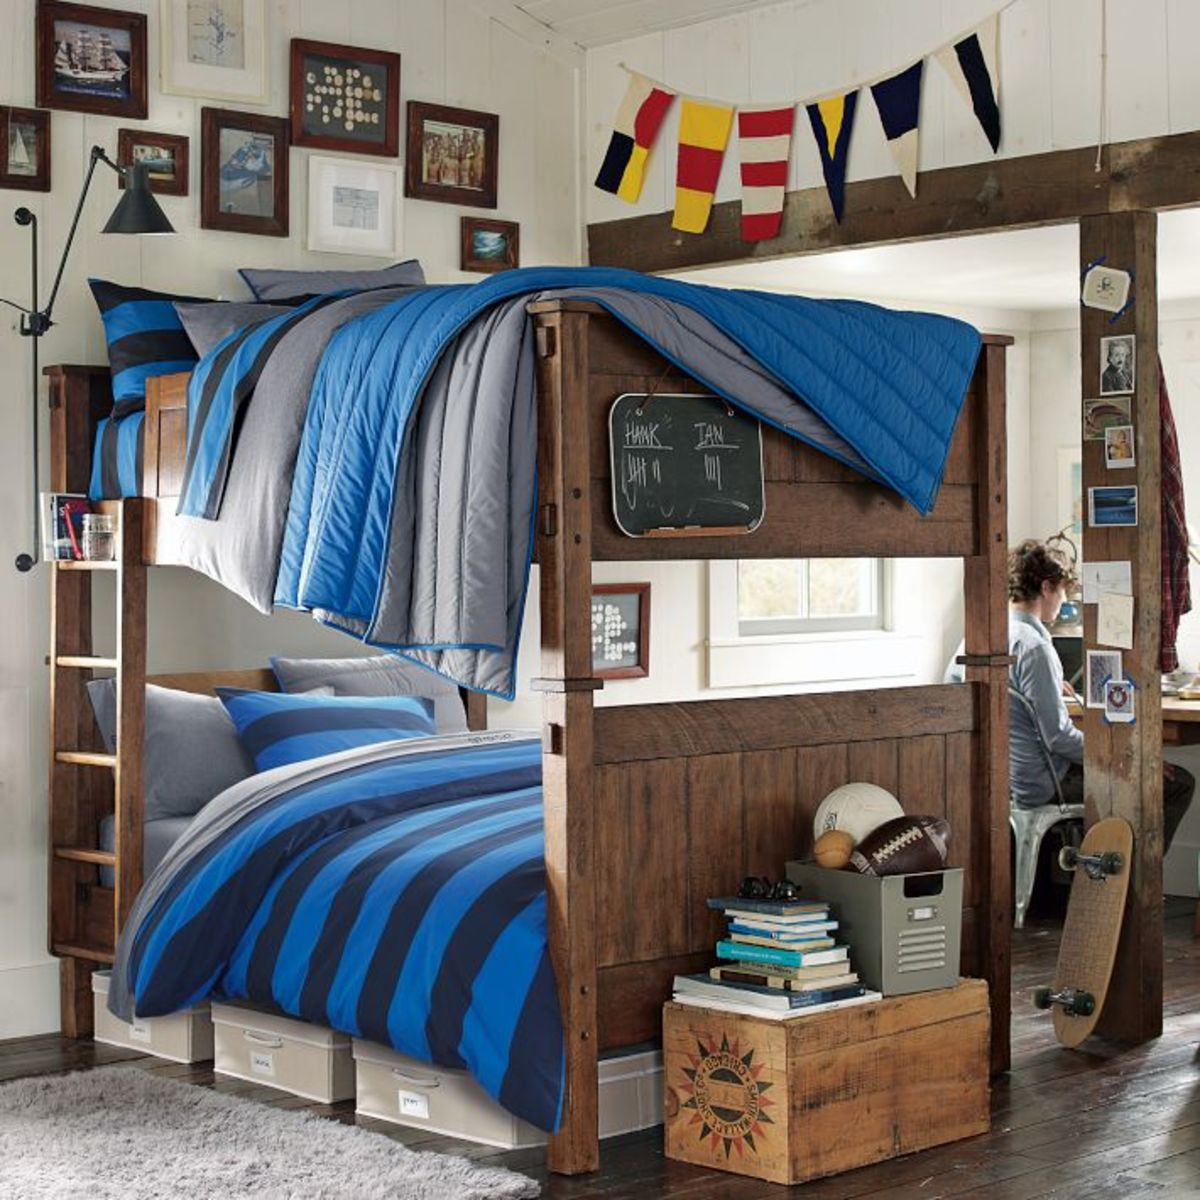 The Best Kids Beds For Shared Bedrooms For Kids